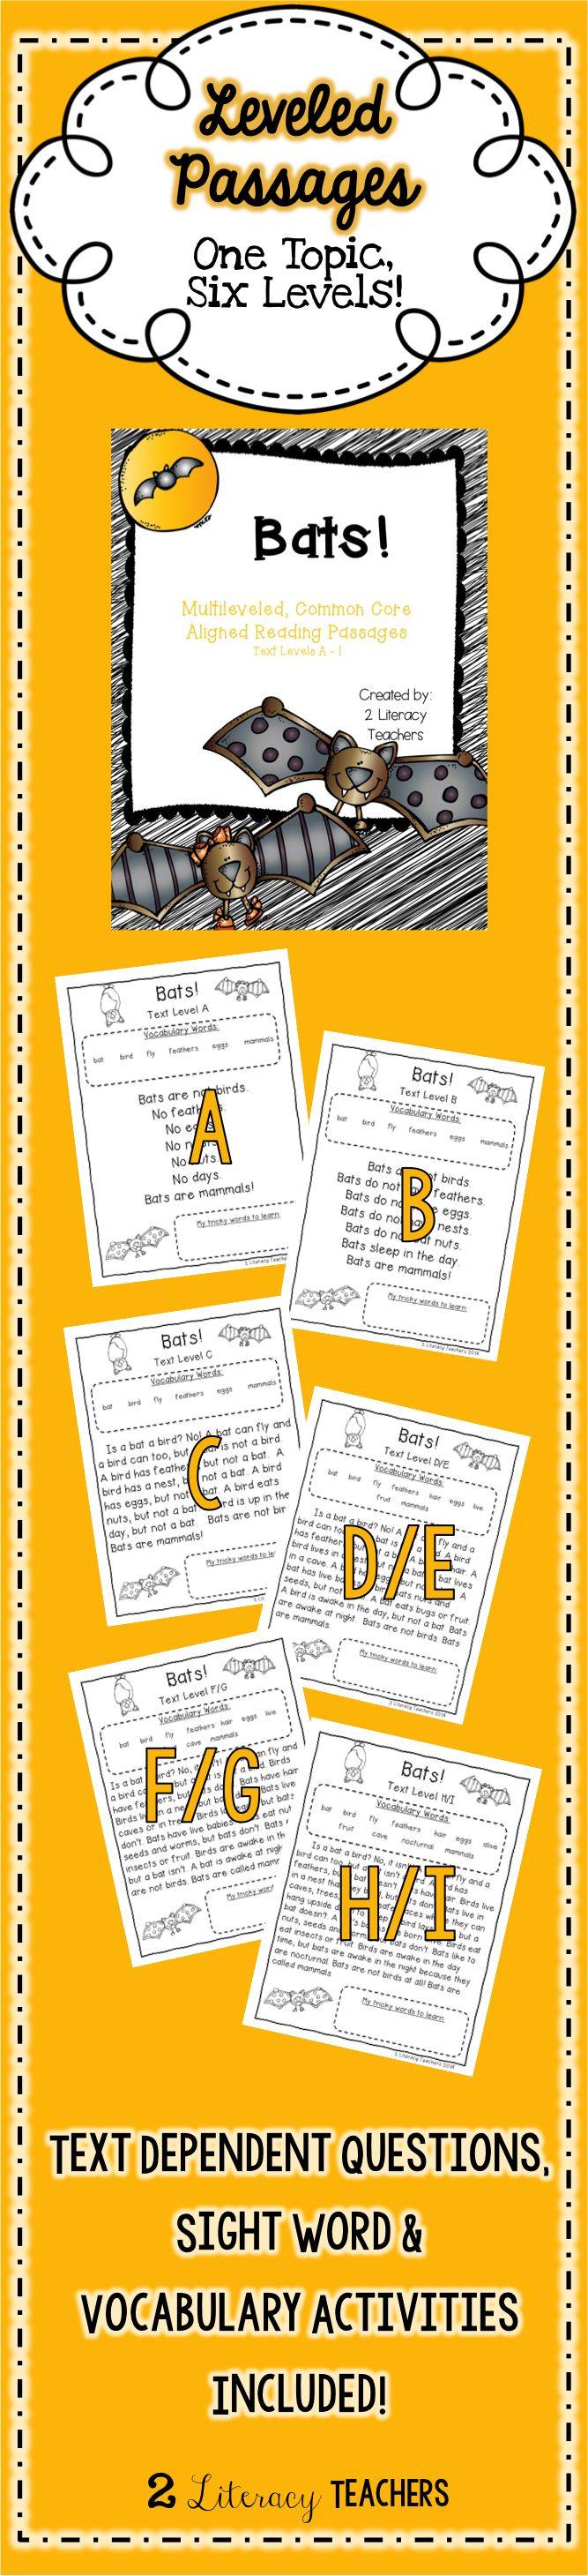 Bats! Leveled Passages. One topic, six levels. Great for differentiation. Can be used in small groups and whole groups so that each student can access the same content. Perfect to supplement your bat themes!